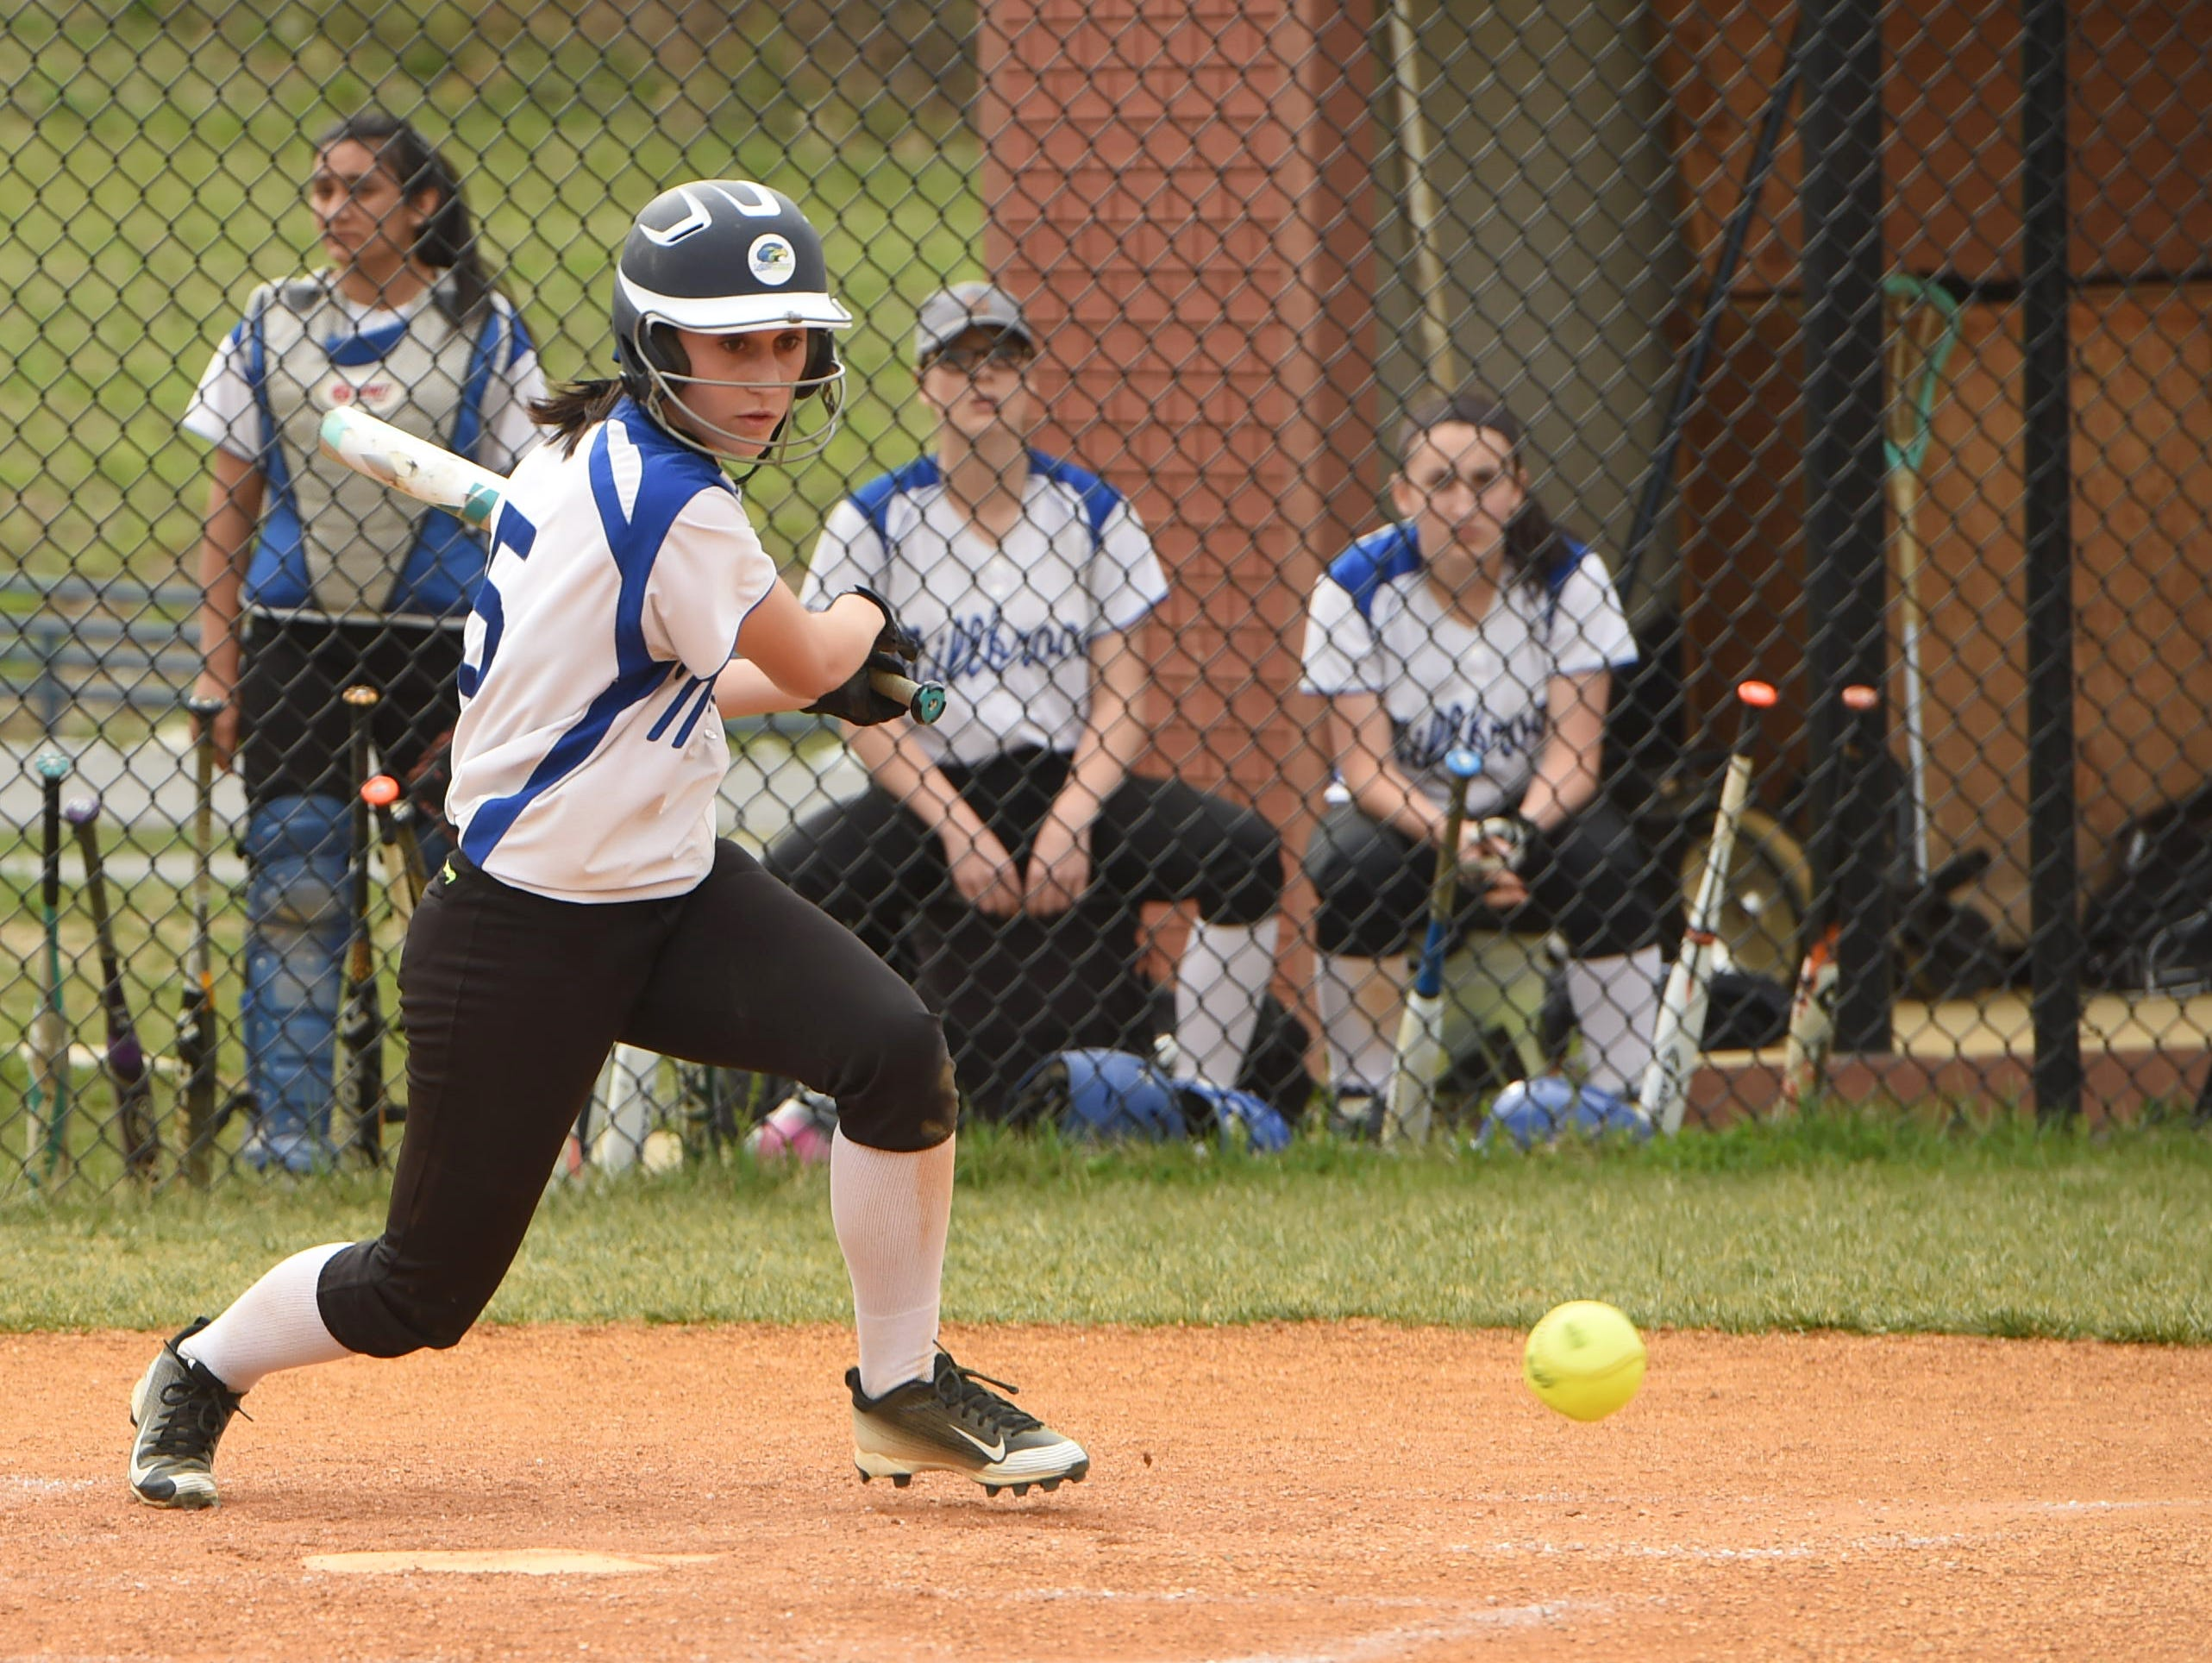 Millbrook's Sierra Guardiola slices the ball down the first base line during Monday's game against Pine Plains.